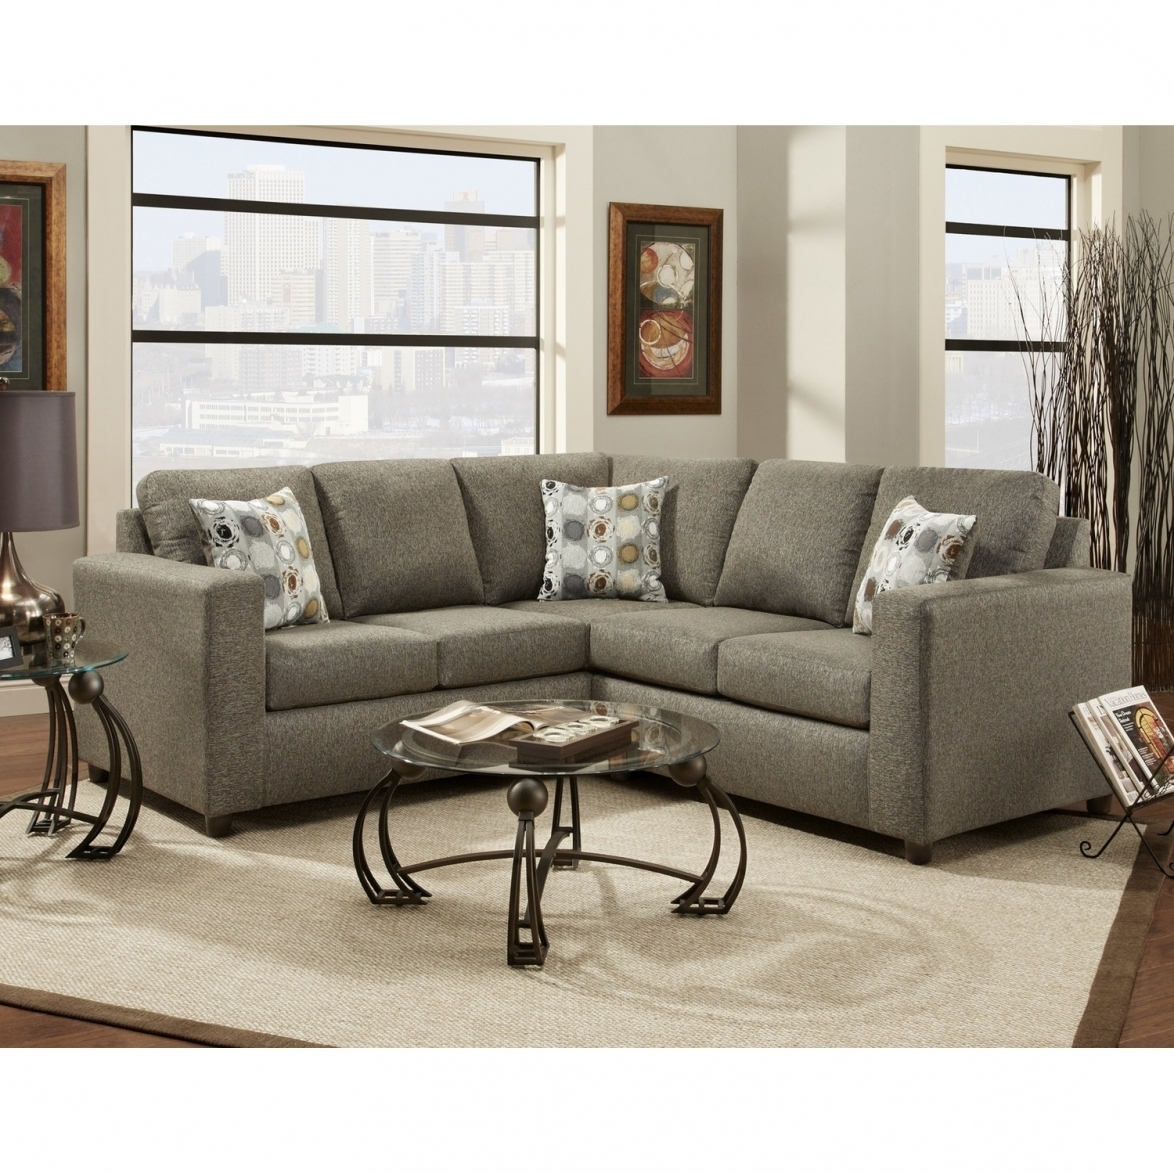 Photos Sectional Sofas Jacksonville Fl – Buildsimplehome For Popular Jacksonville Fl Sectional Sofas (View 12 of 15)